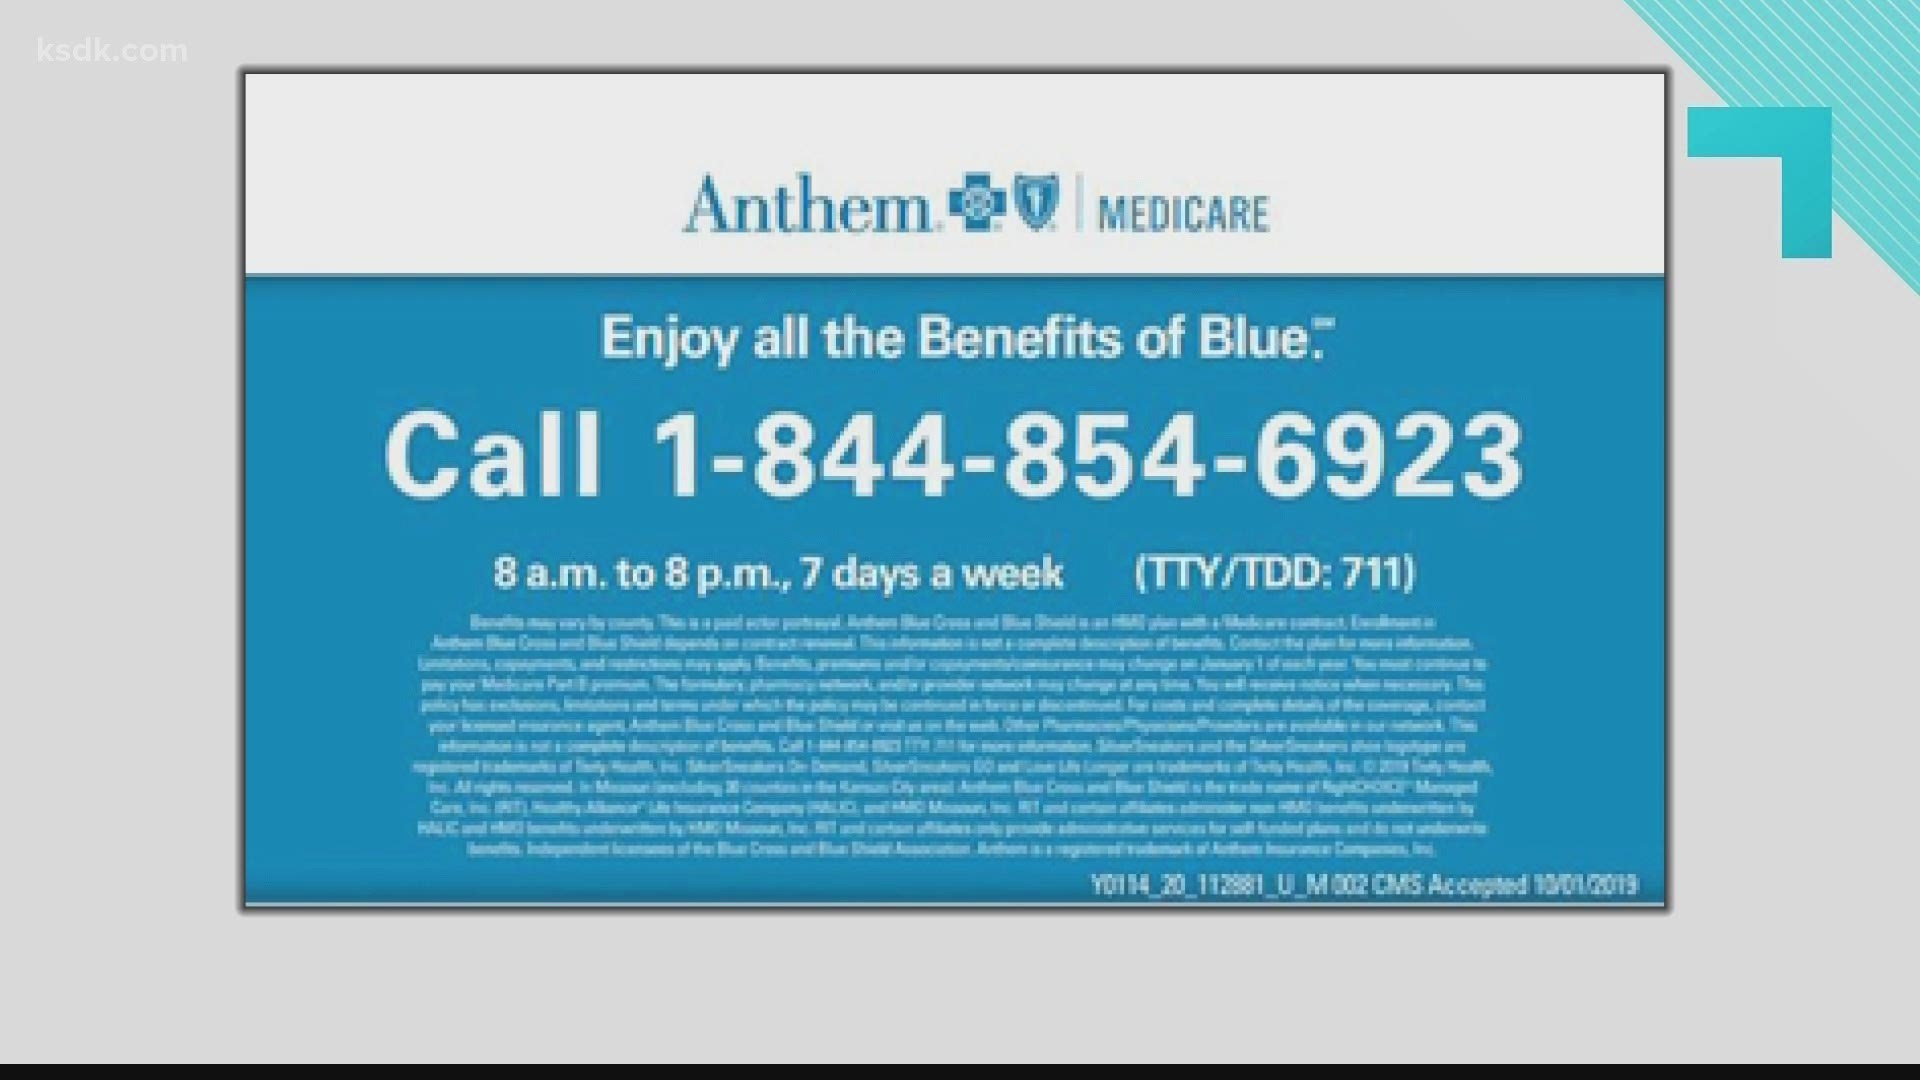 Anthem Blue Cross and Blue Shield offers Medicare ...